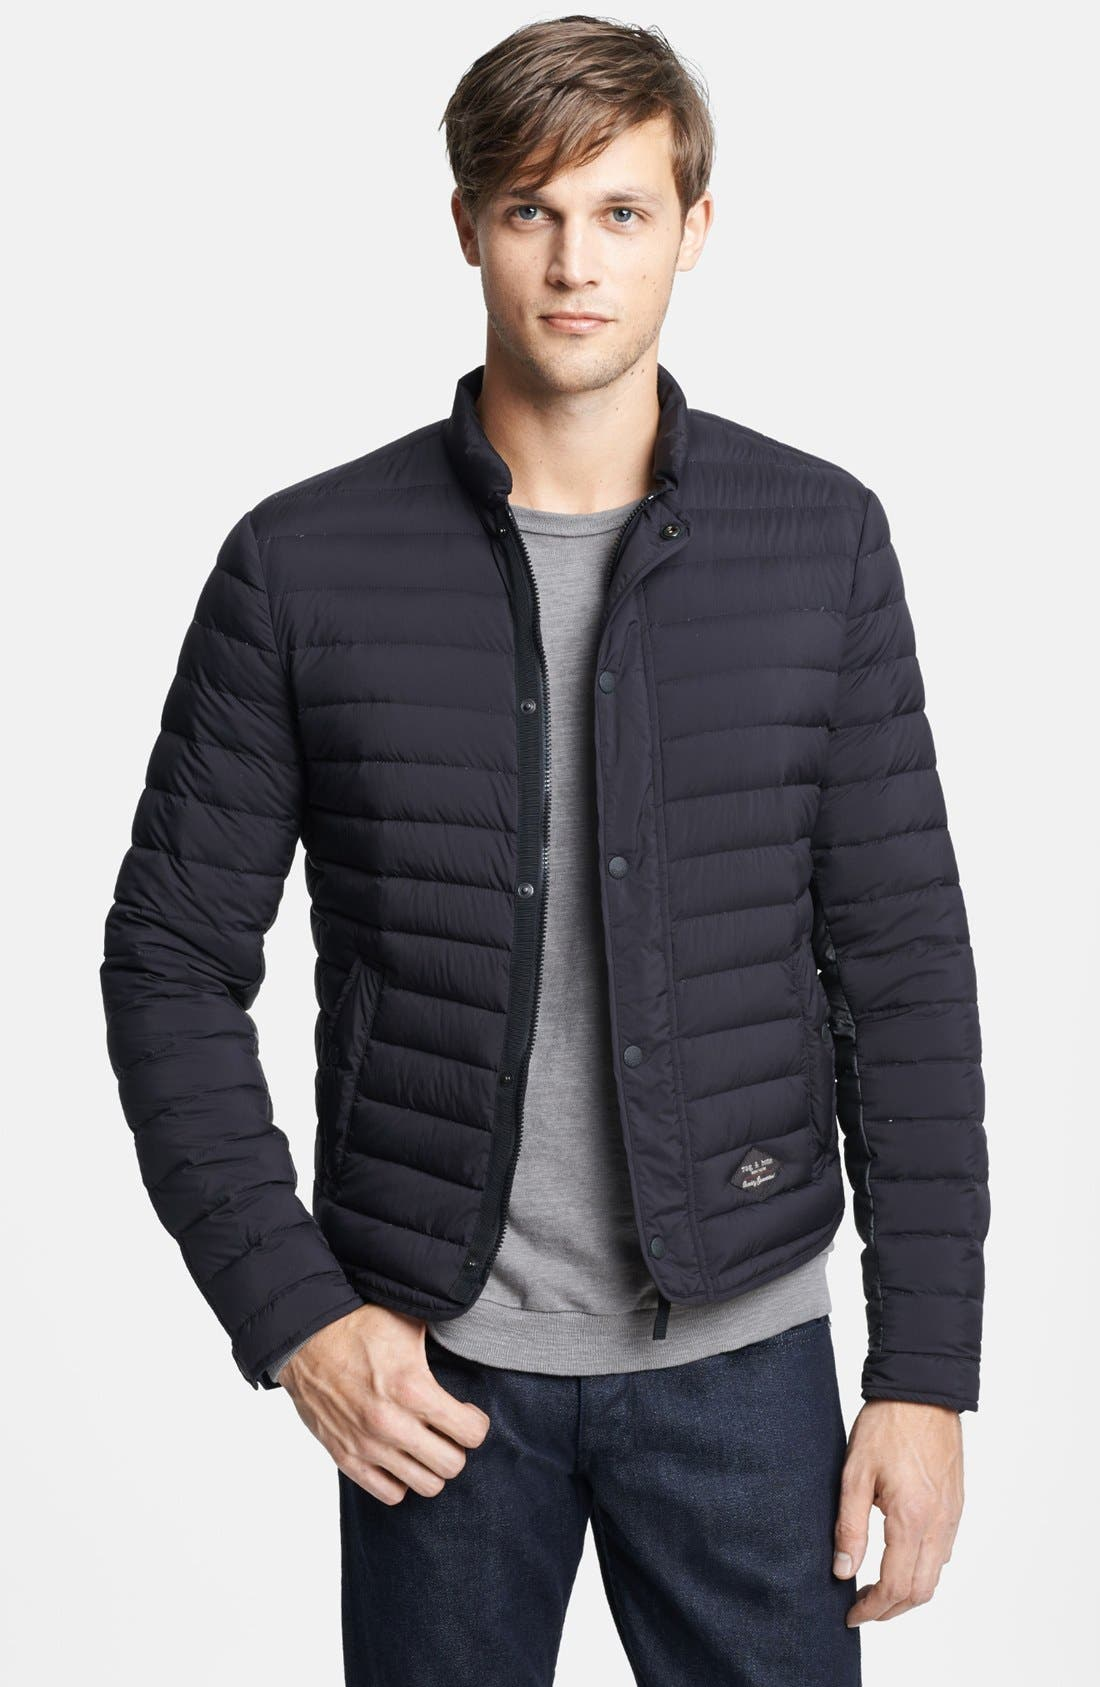 Alternate Image 1 Selected - rag & bone 'Chelsea' Water Repellent Quilted Jacket